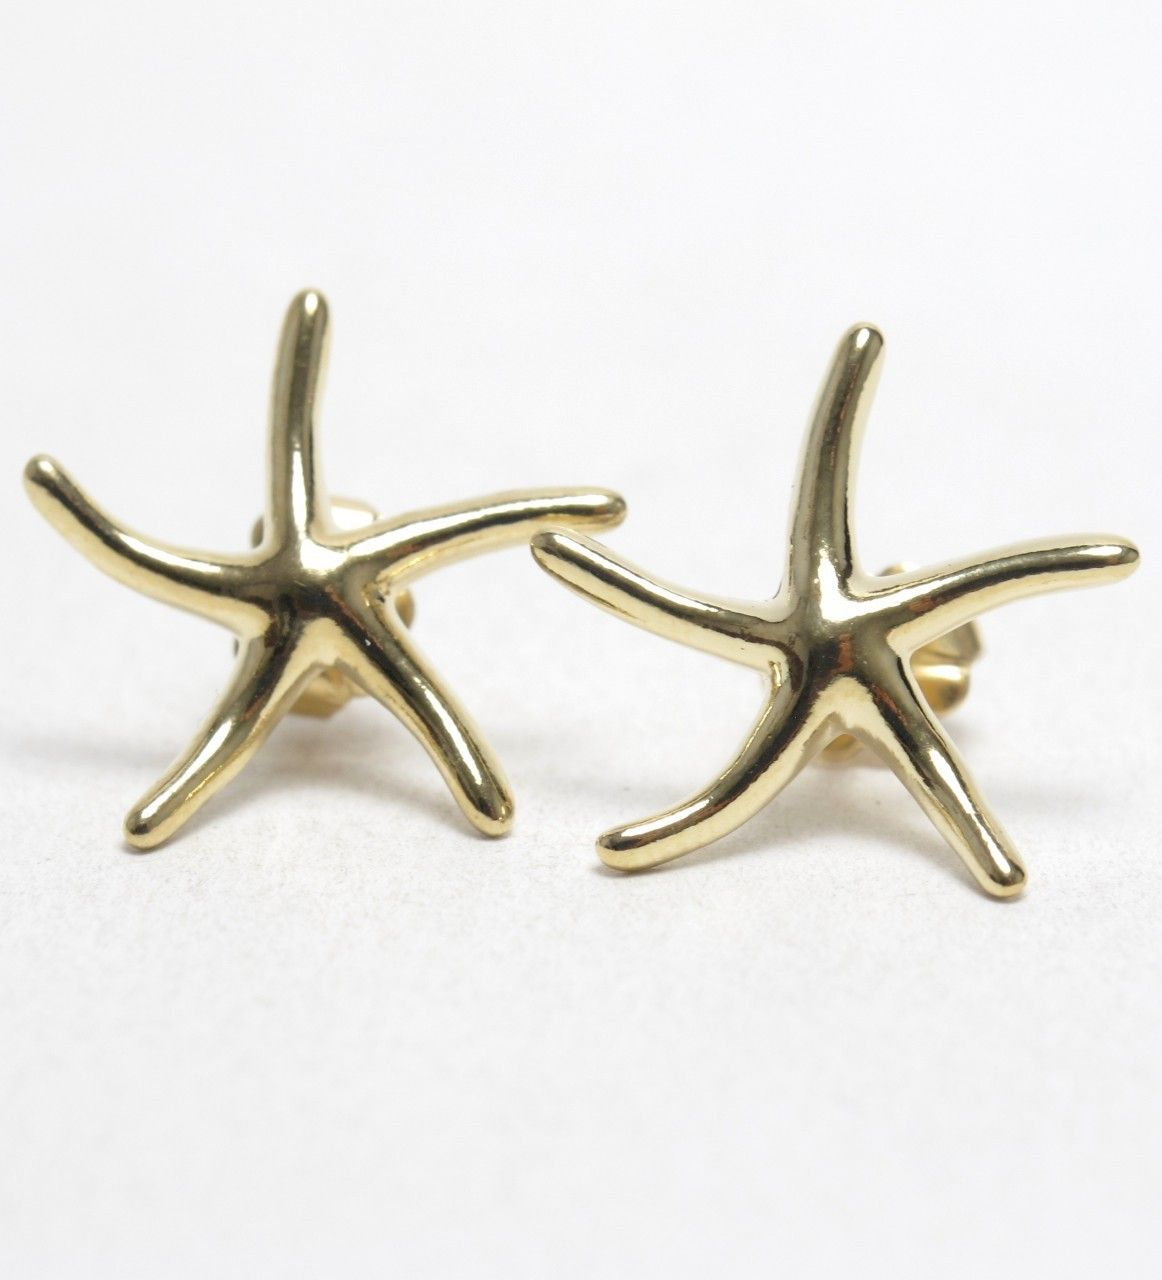 Great for the beach! Small Starfish Earrings (http://www.starfishboulder.com/small-starfish-earrings-vermeil/)